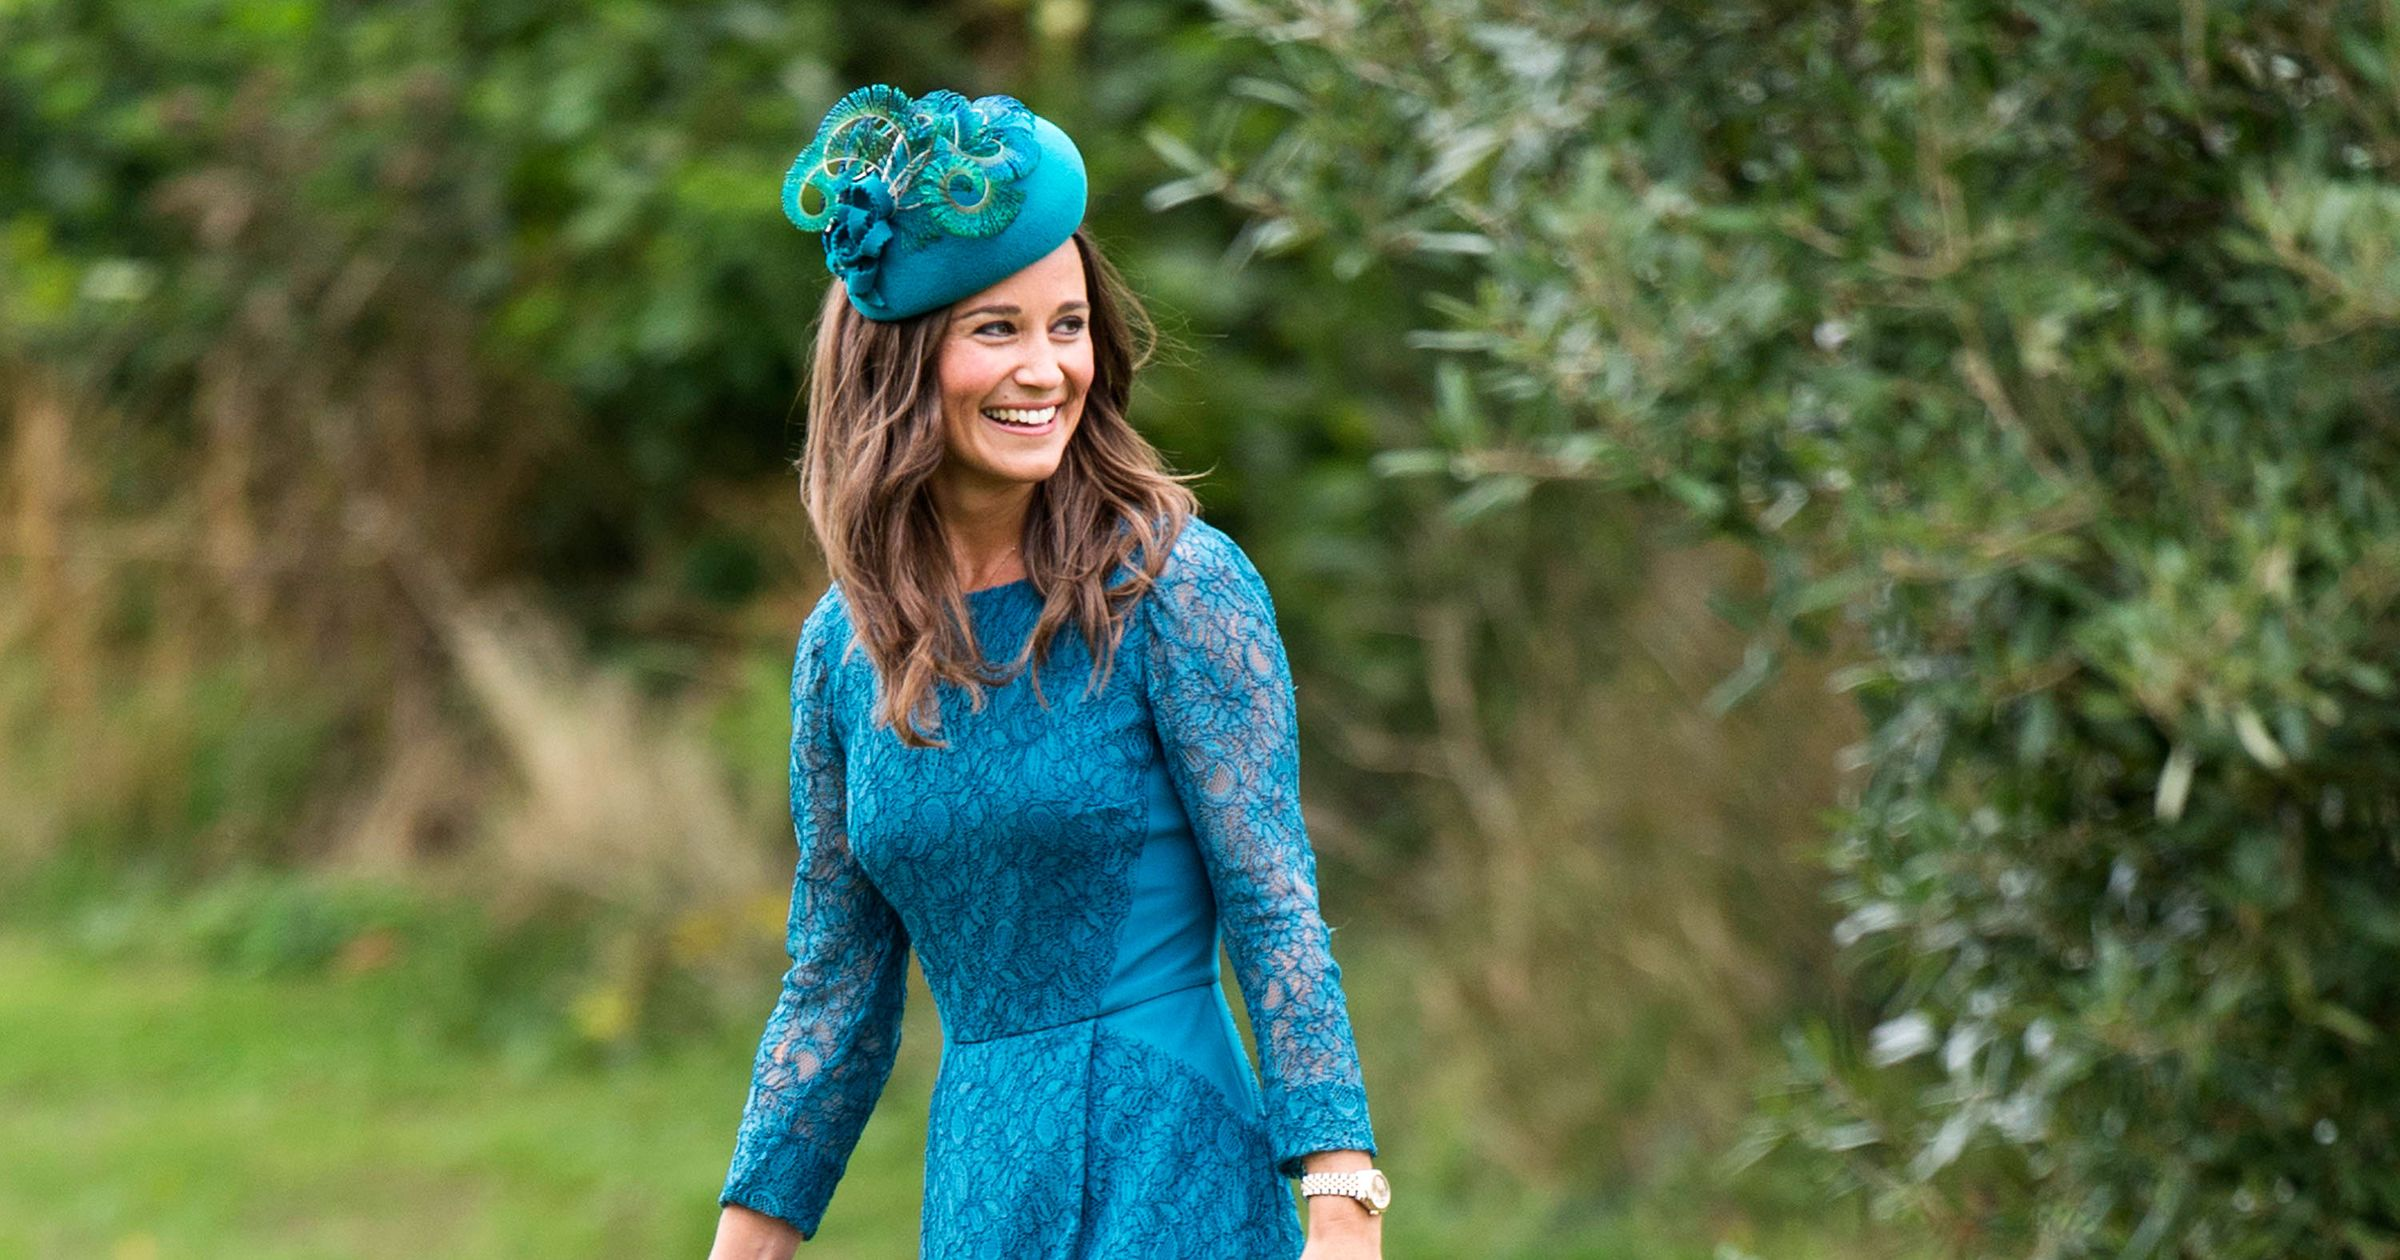 Pippa Middleton in a blue formal dress with a matching hat out in the open